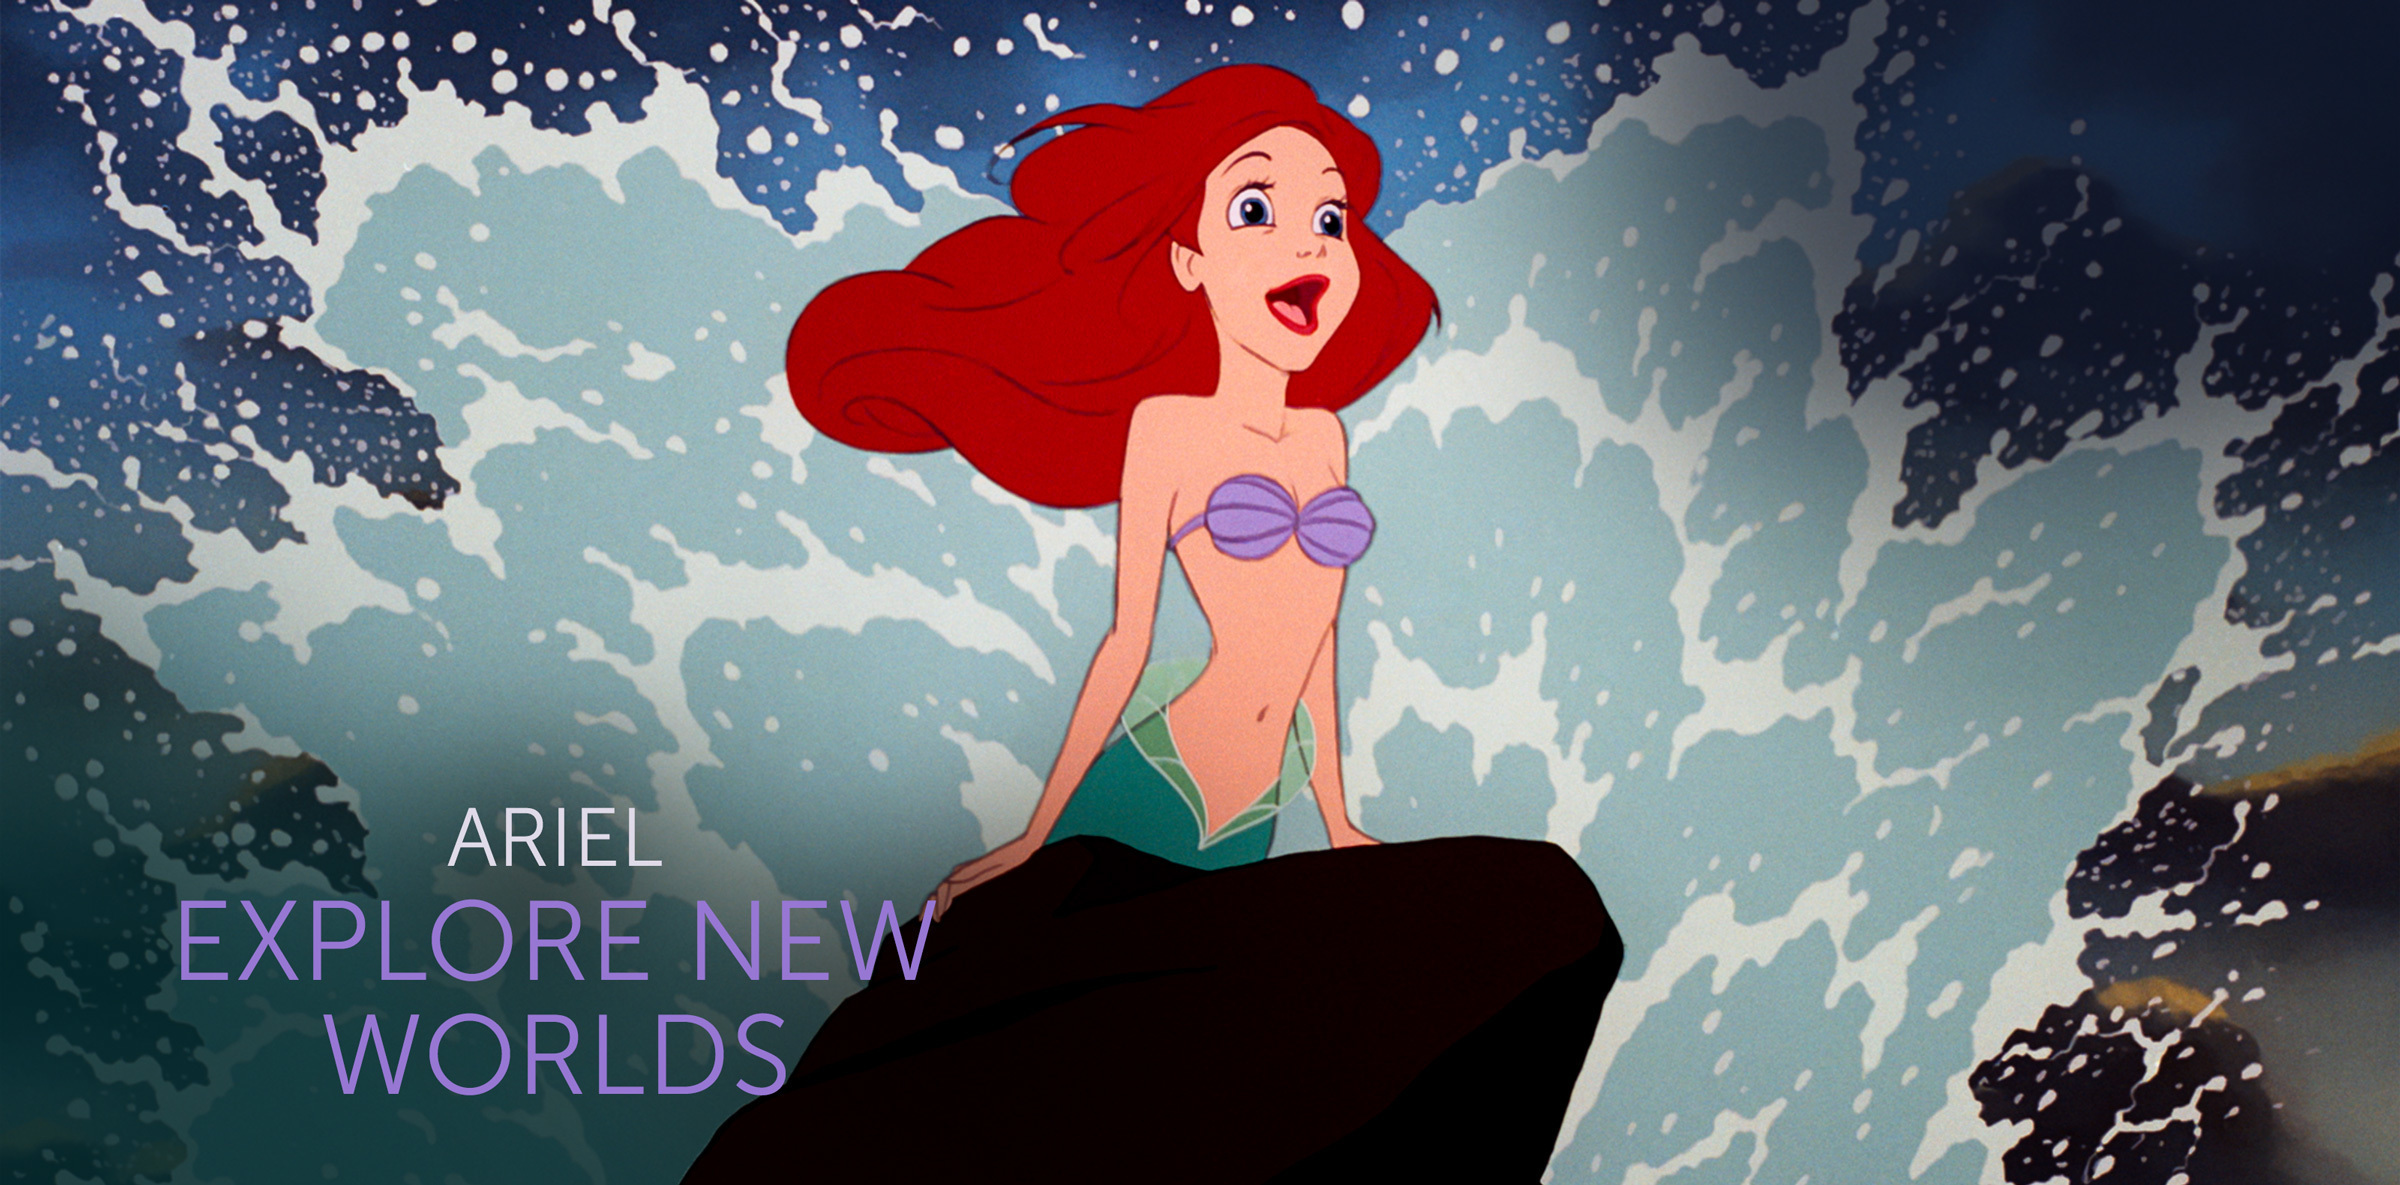 Ariel MOVIE ART 1